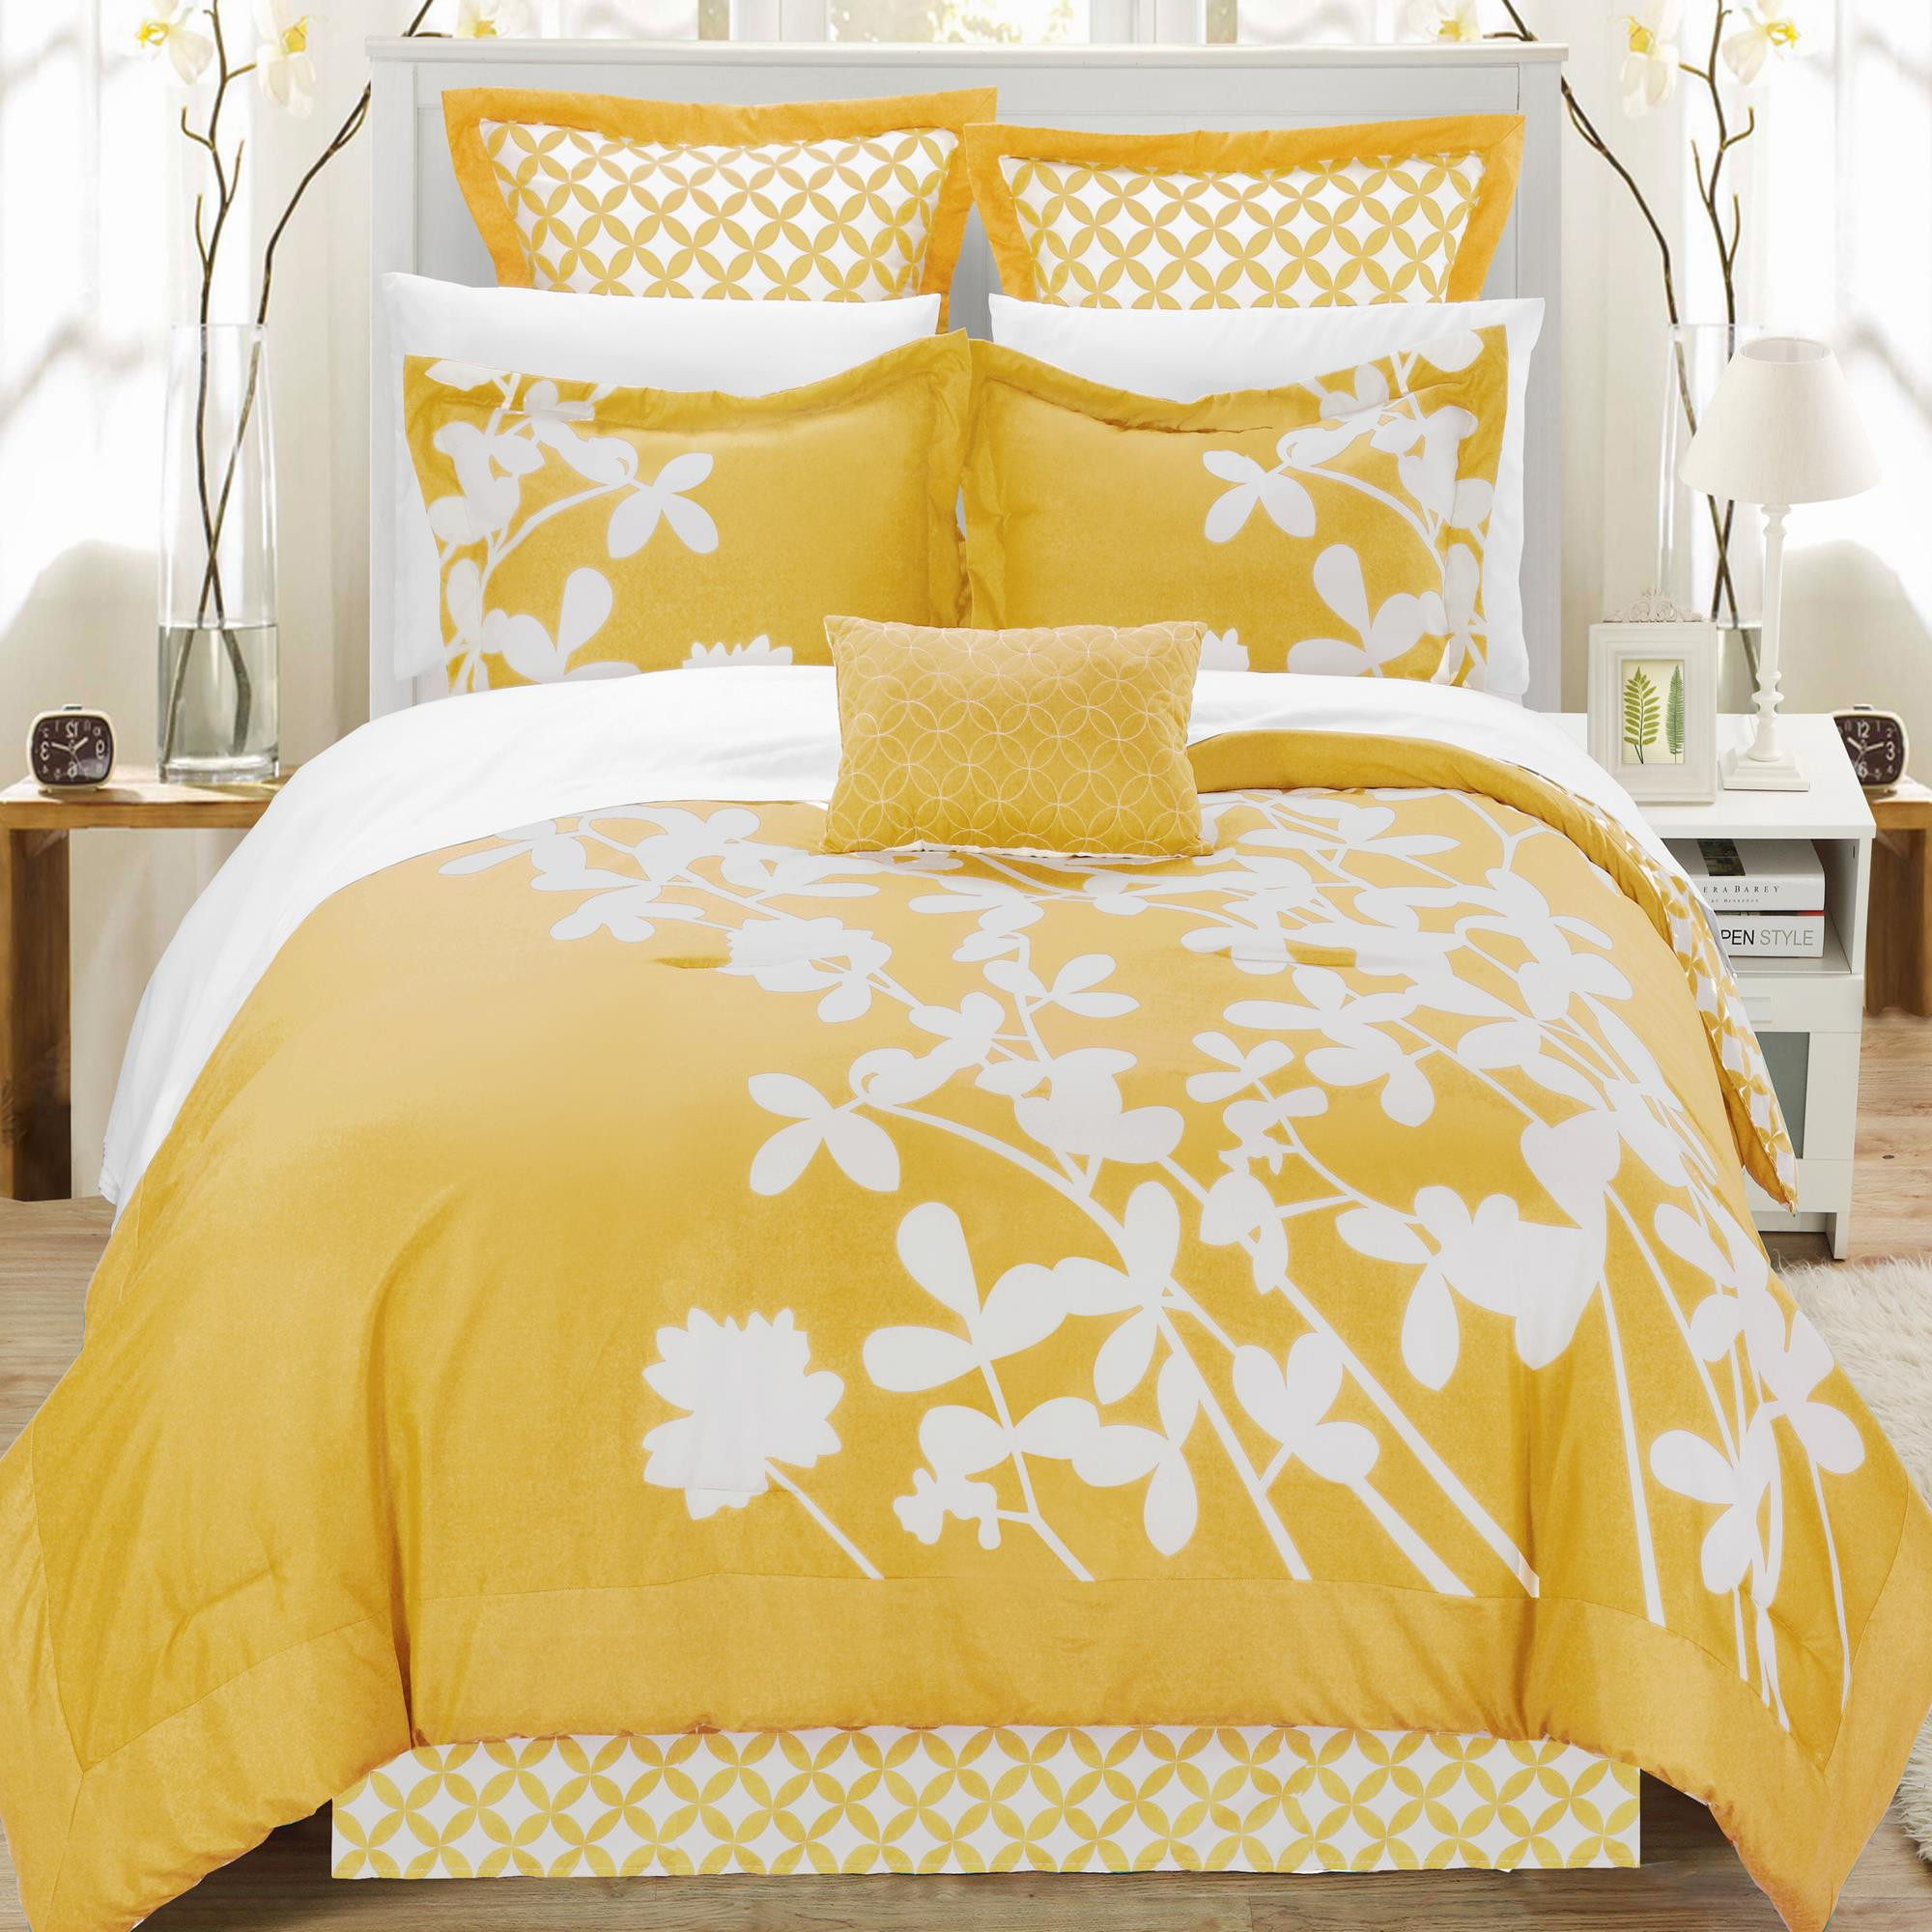 Iris Yellow & White King 7 Piece Comforter Bed In A Bag Set